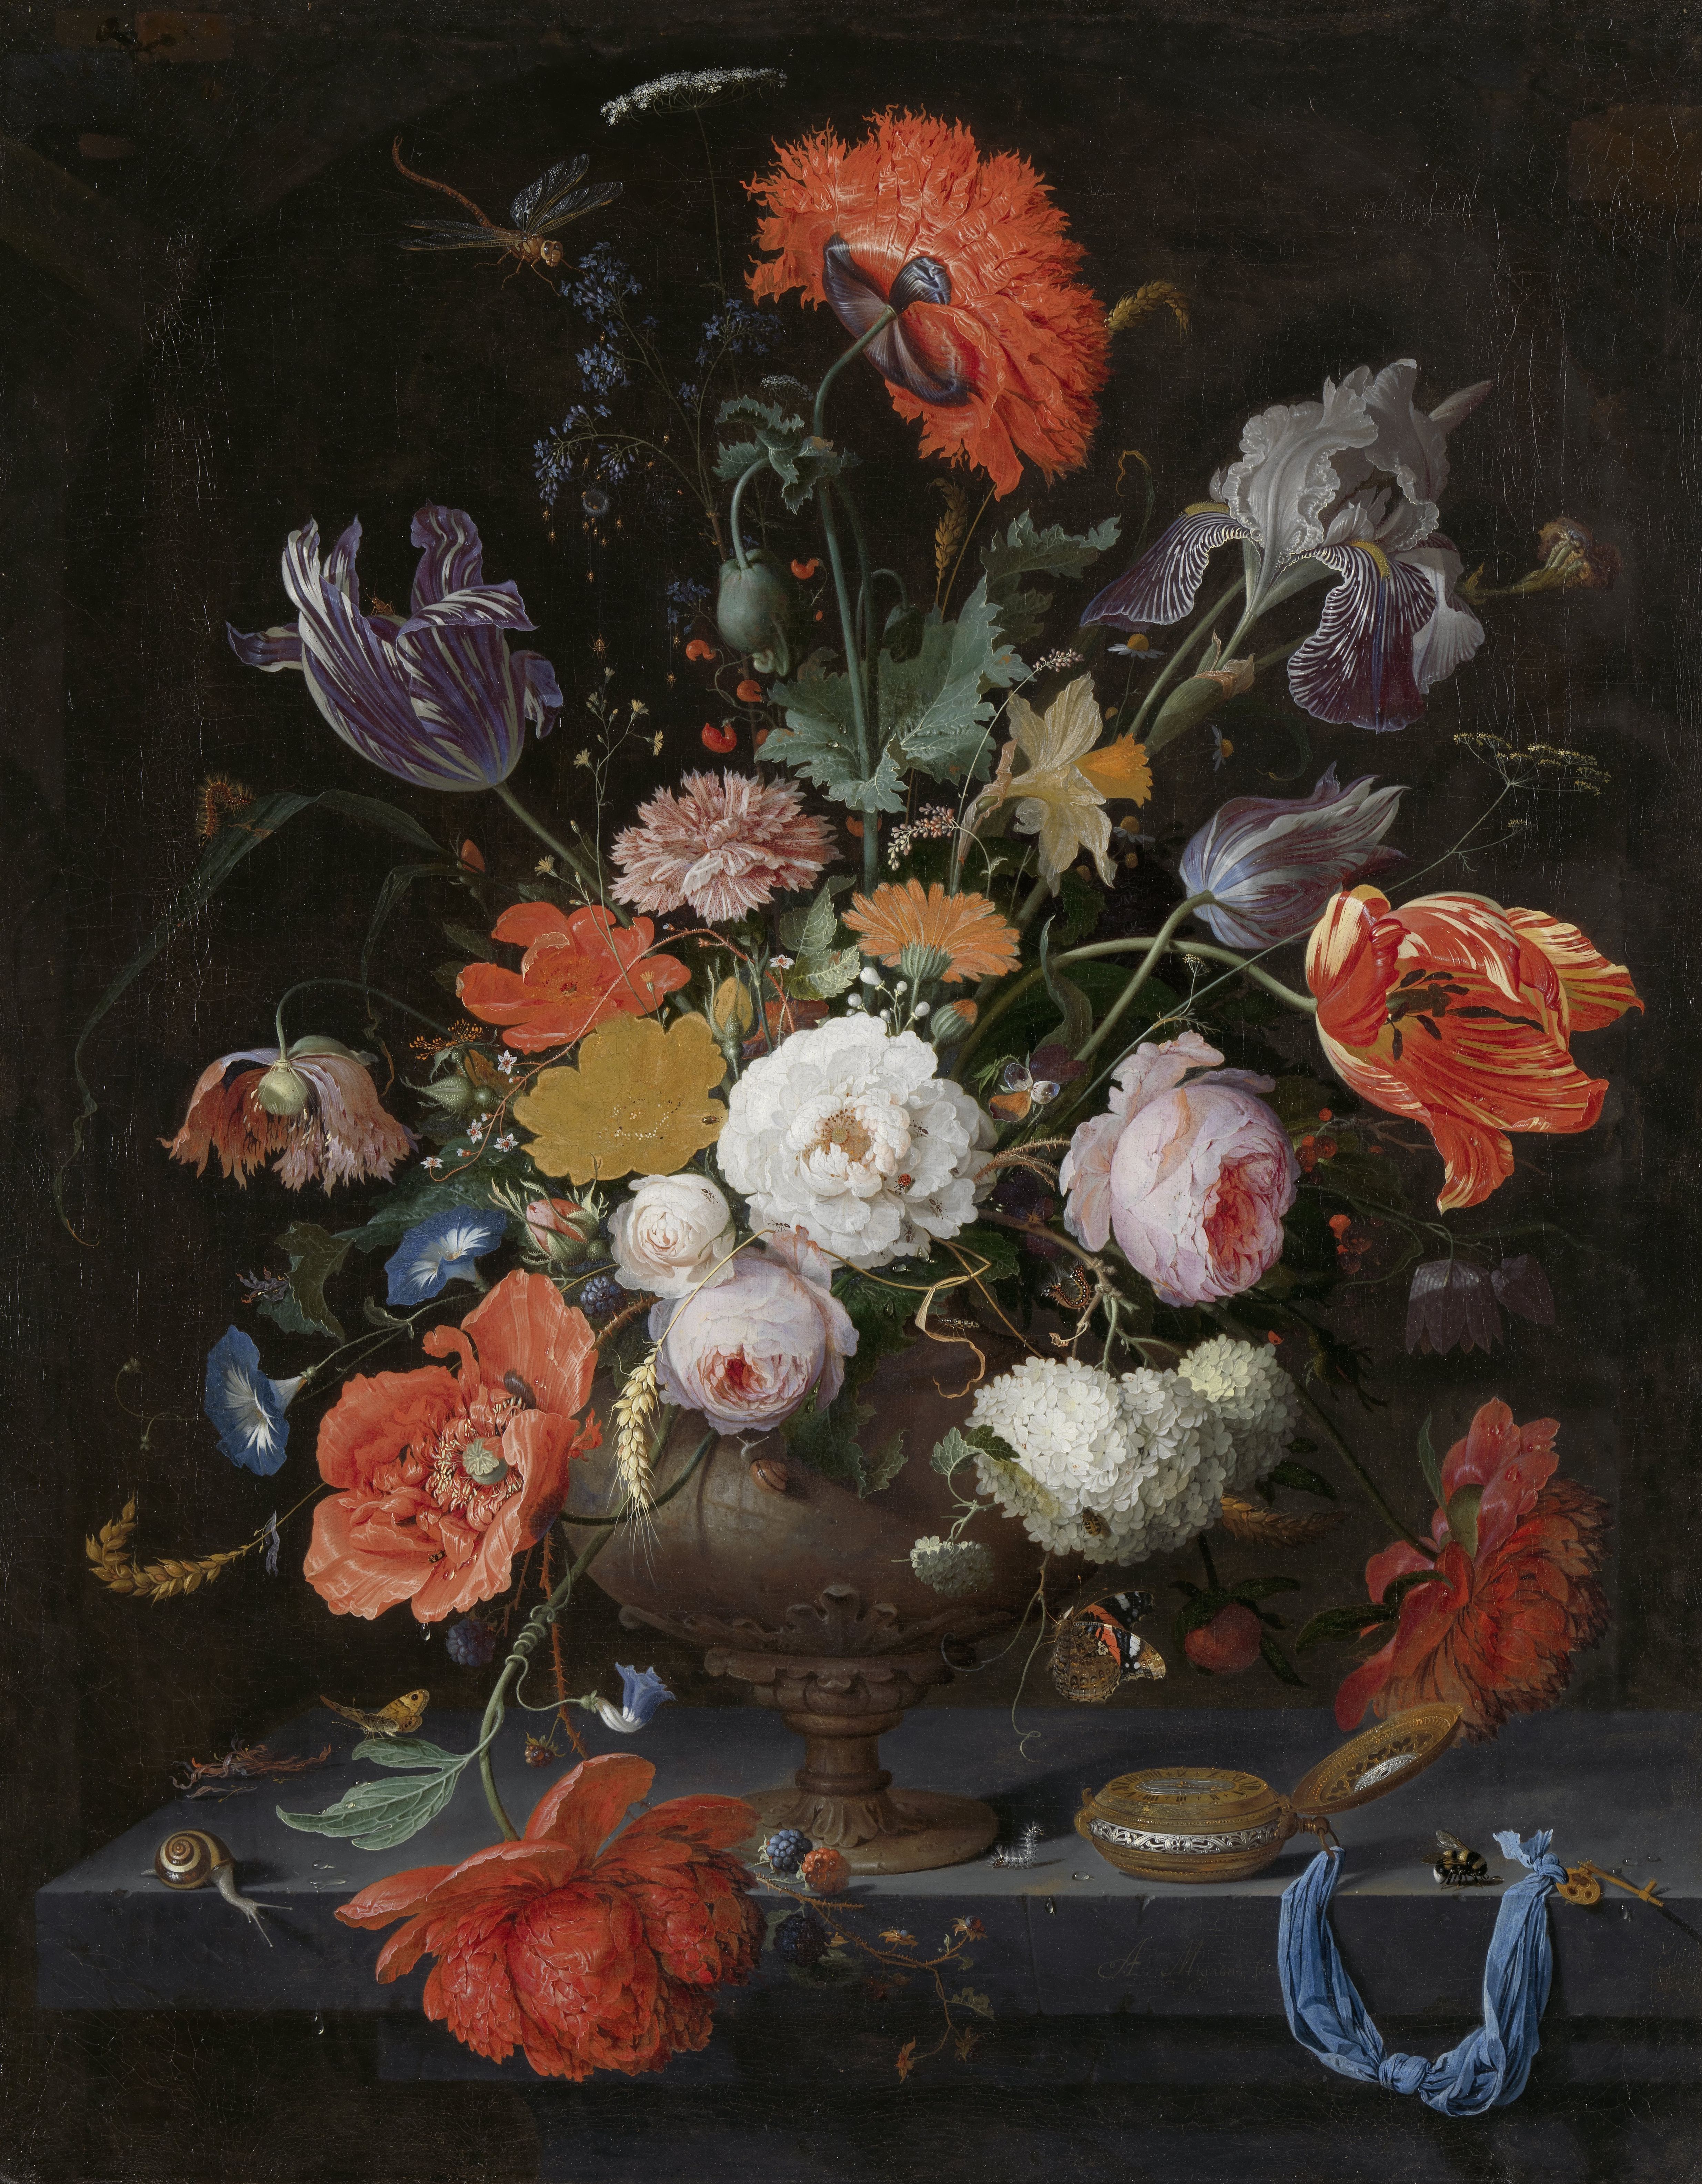 Still Life with Flowers and a Watch, Abraham Mignon, c. 1660 - c. 1679